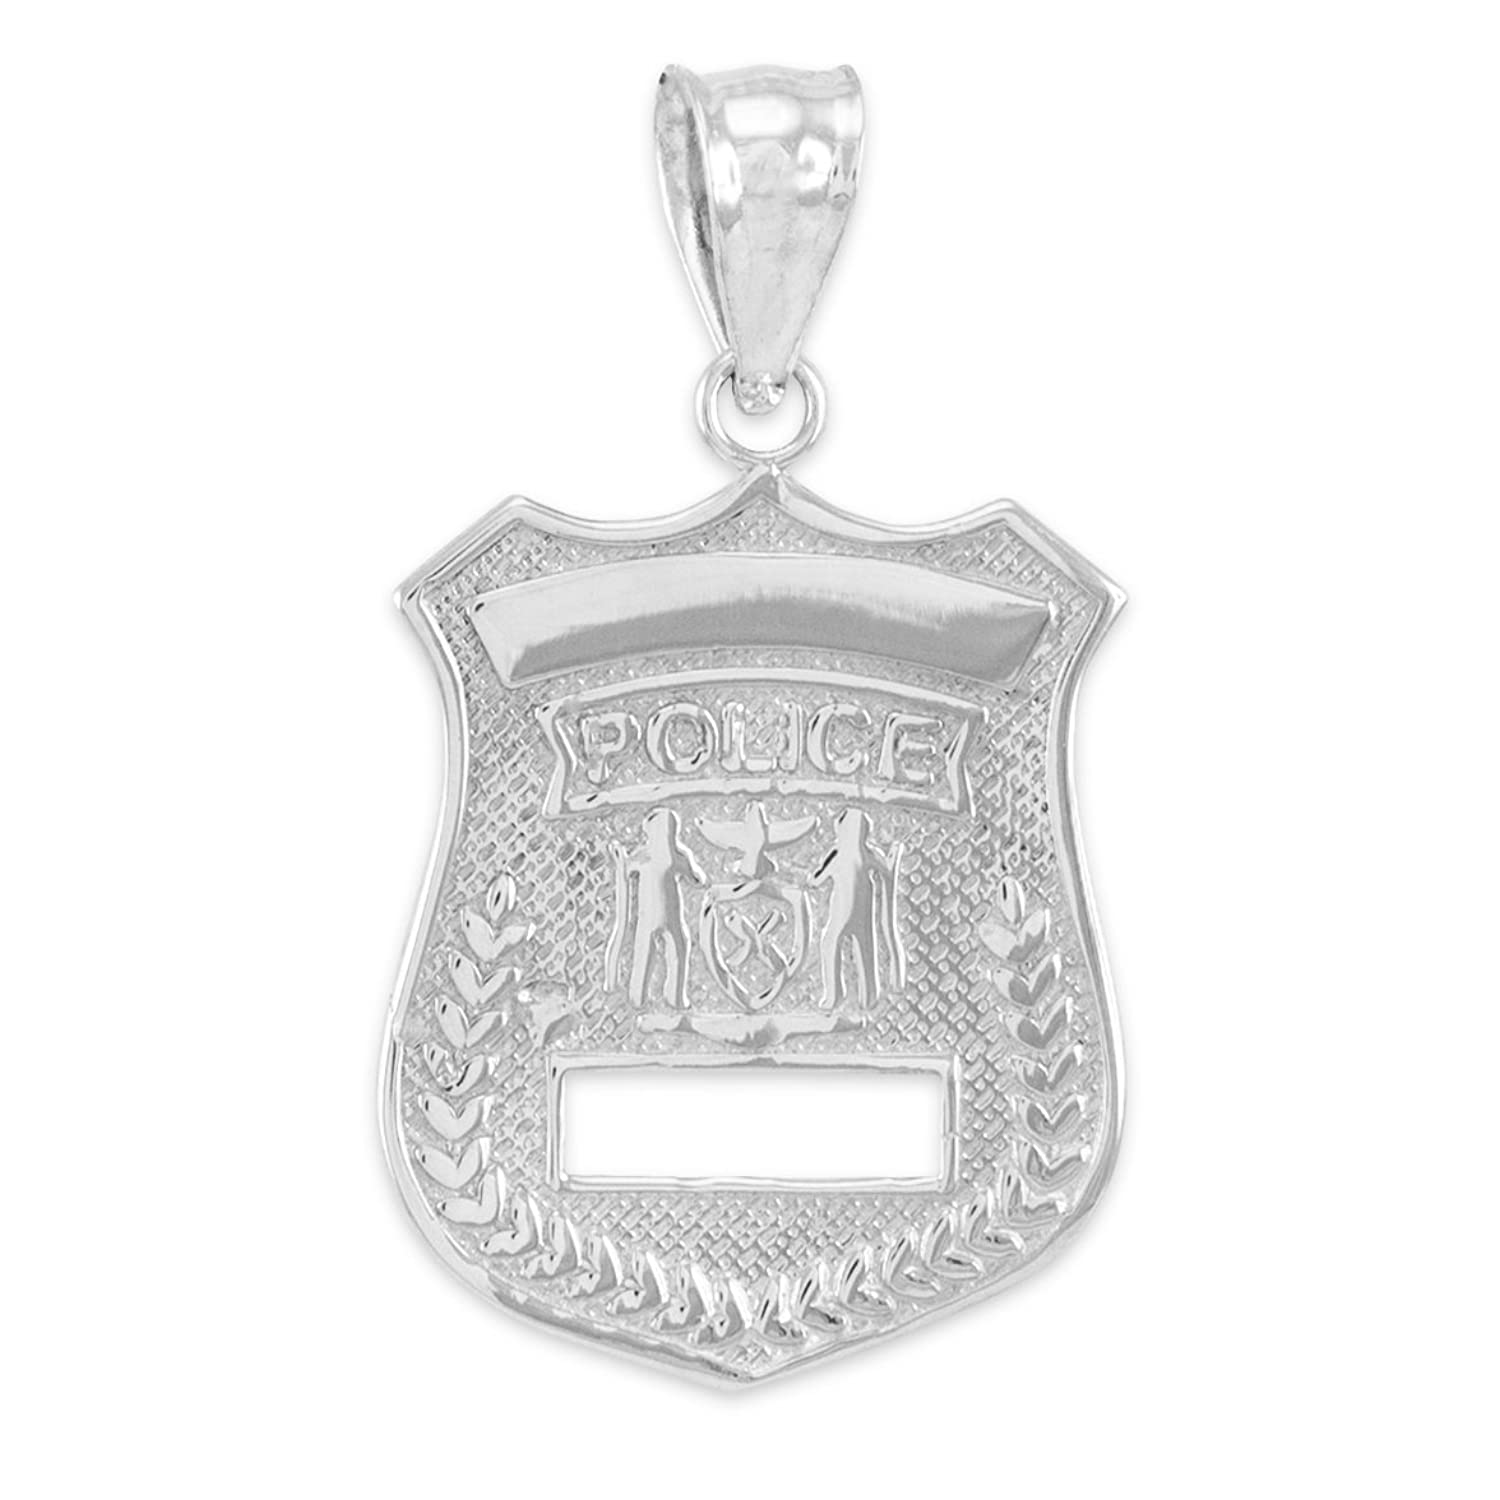 metropolitan cap shop online crown queen badges collectables police pendant badge s